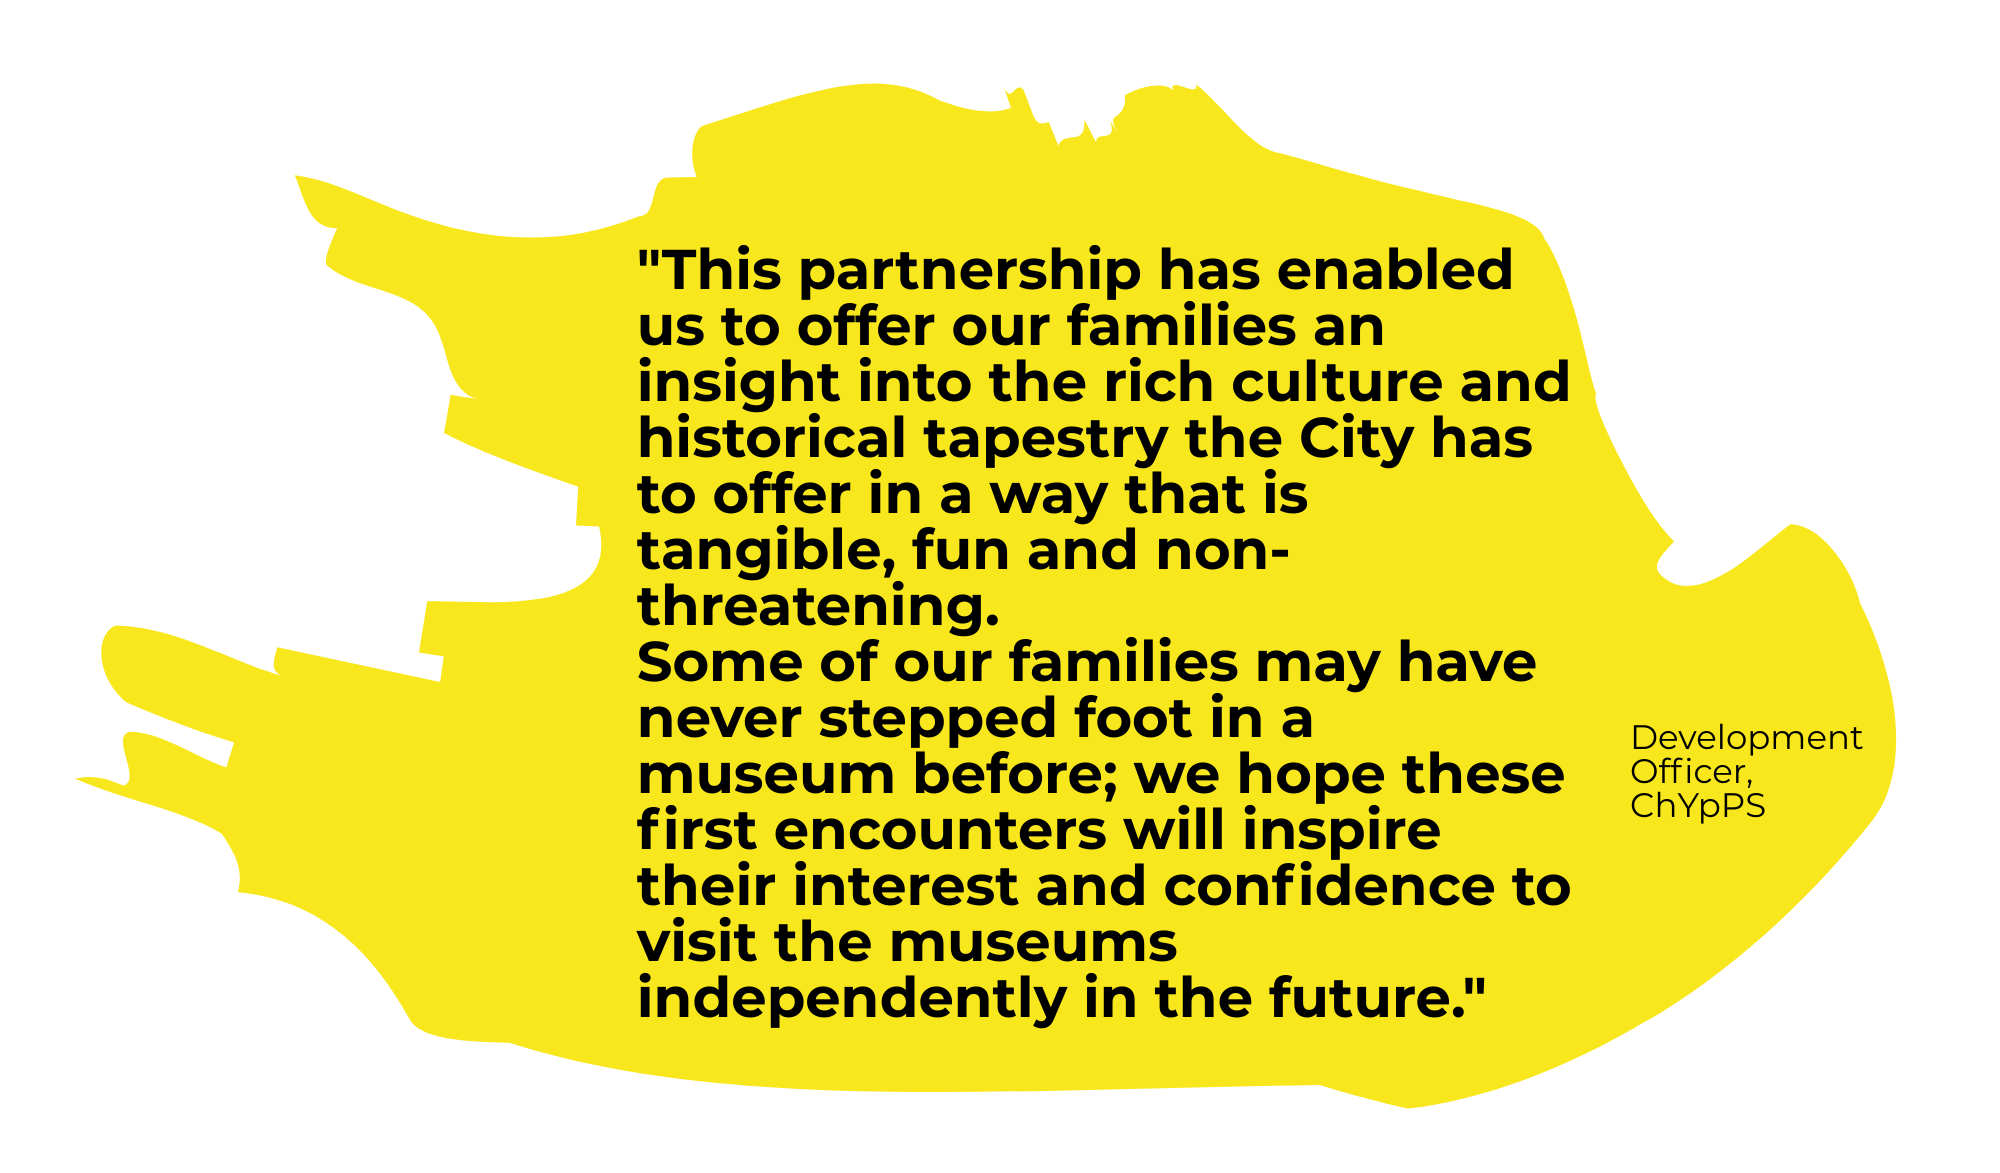 """yellow splodge with a quote from the ChYpPS Development Officer; """"This partnership has enabled us to offer our families an insight into the rich culture and historical tapestry the city has to offer in a way that is tangible, fun and non-threatening. Some of our families may have never stepped foot in a museum before; we hope these first encounters will inspire their interest and confidence to visit the museums independently in the future."""""""